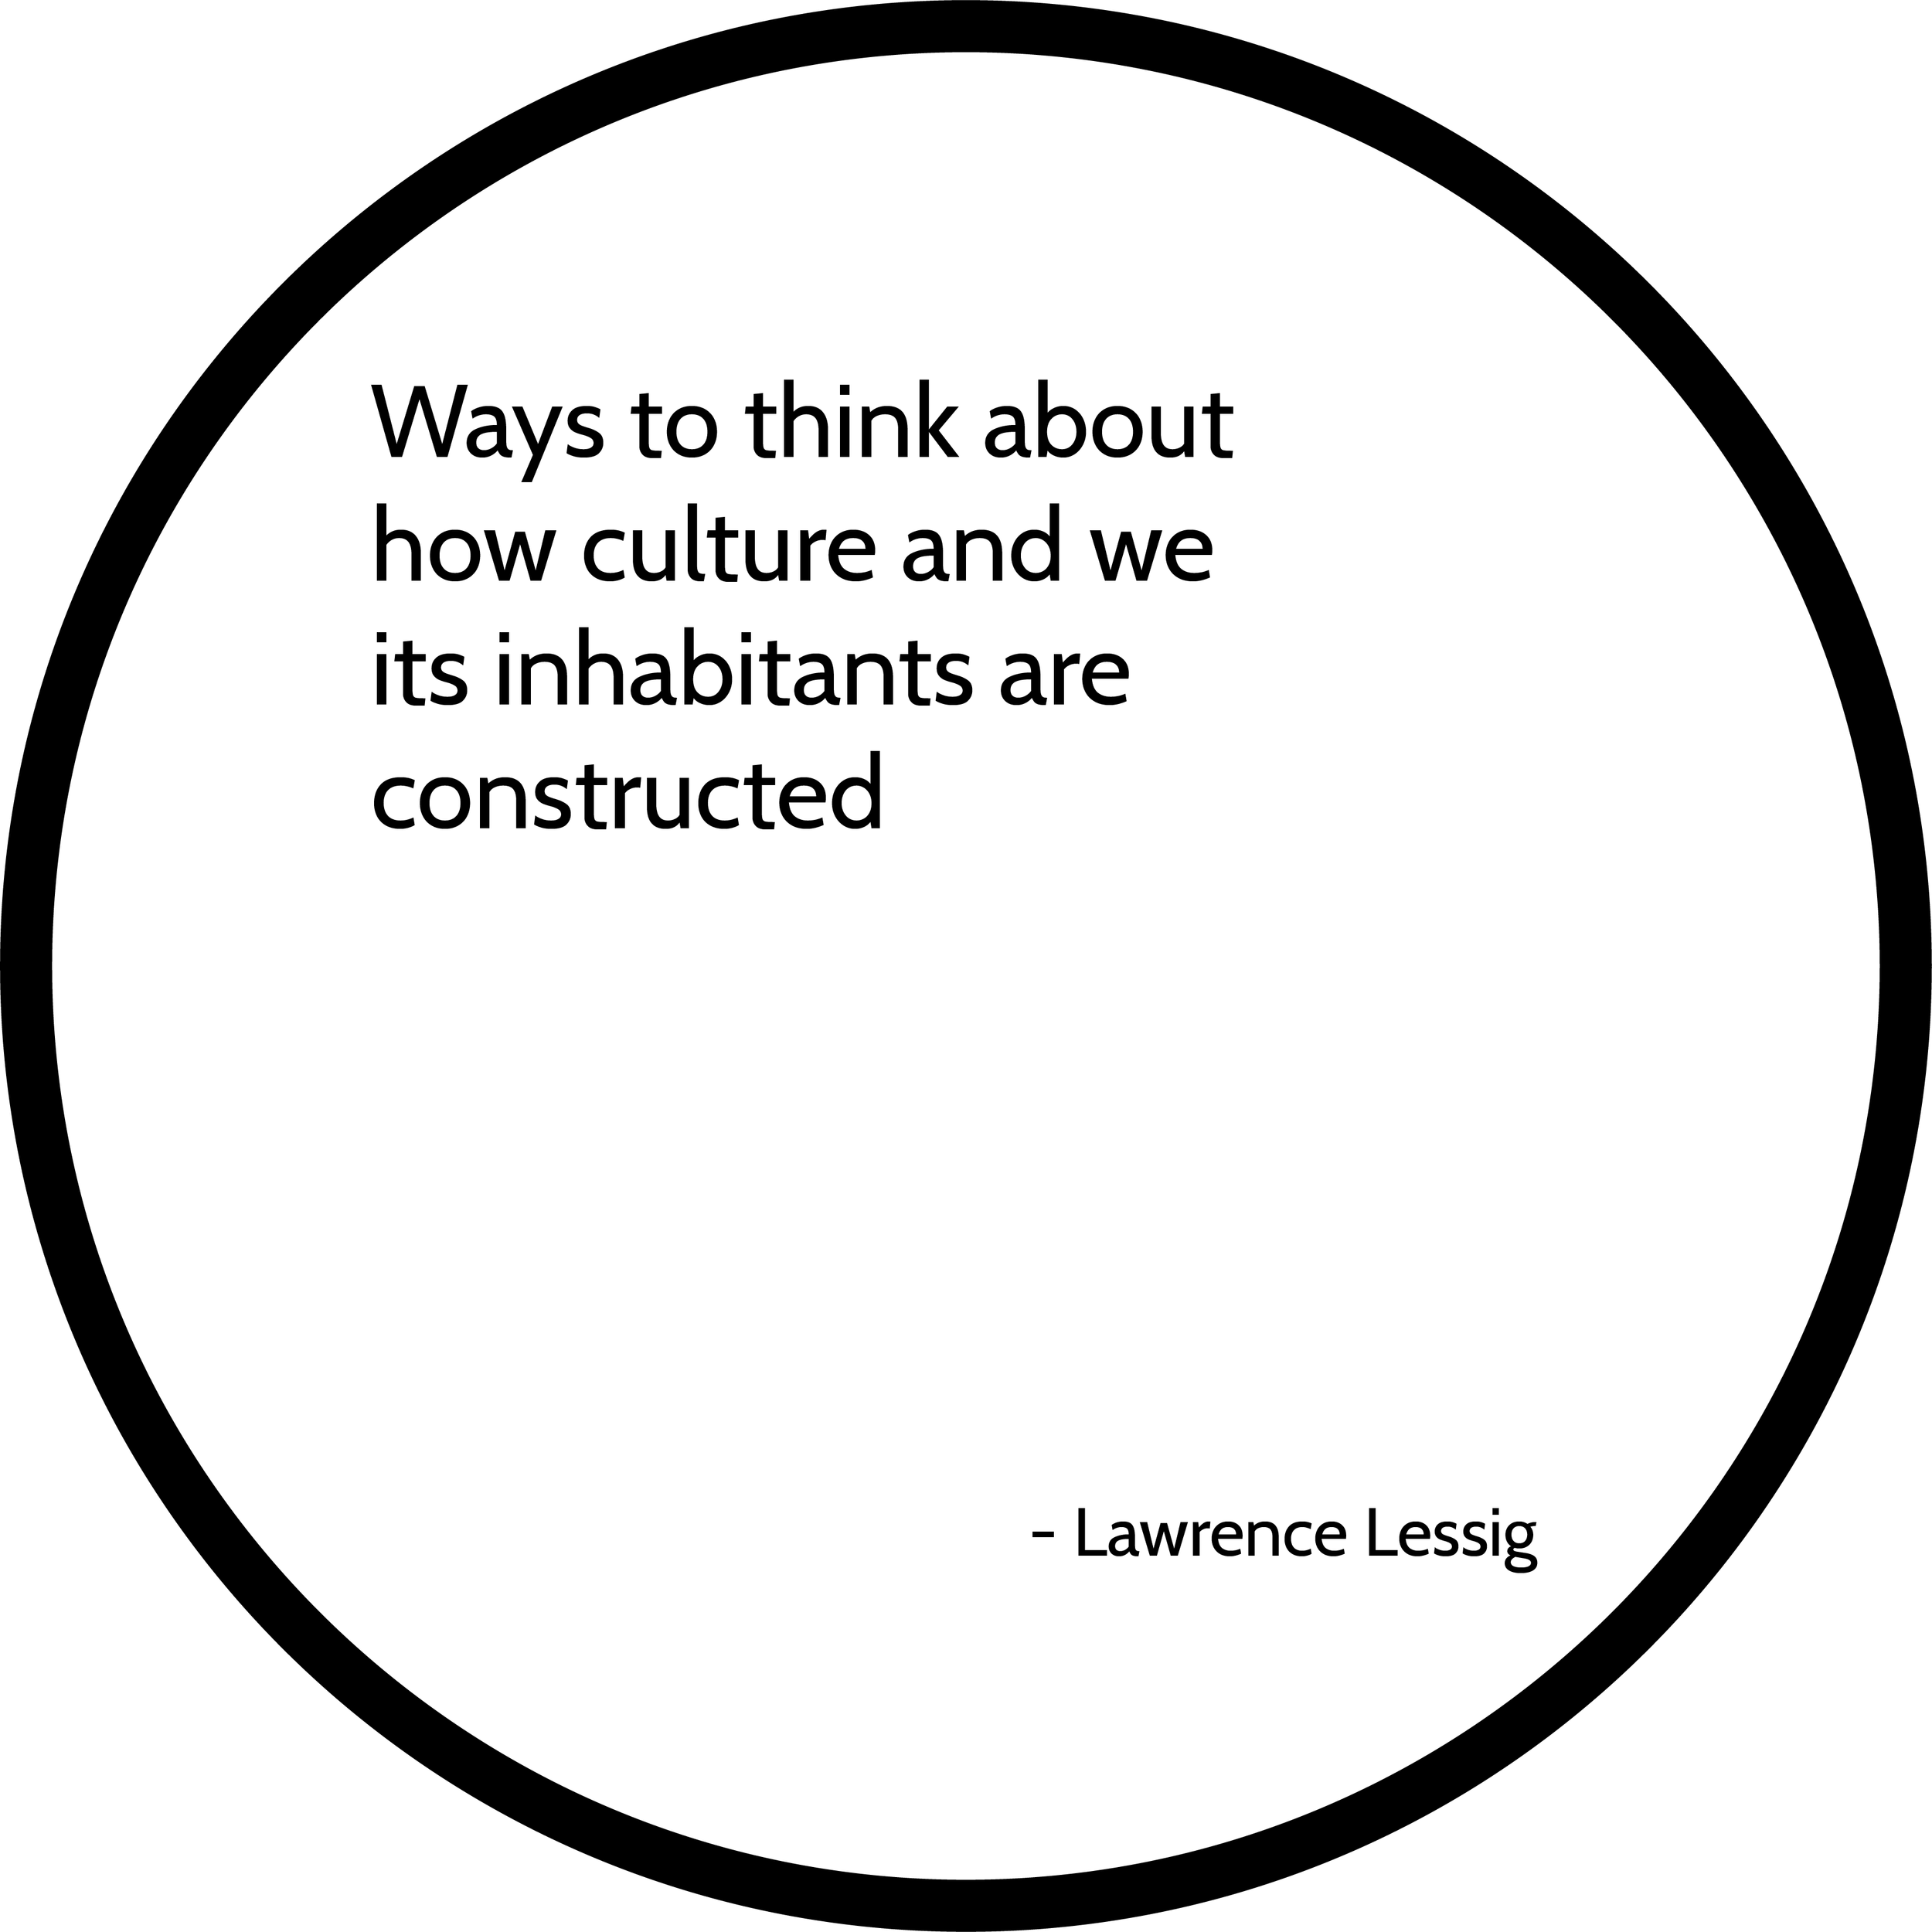 Lawrence Lessig quote 2019.04.24.png